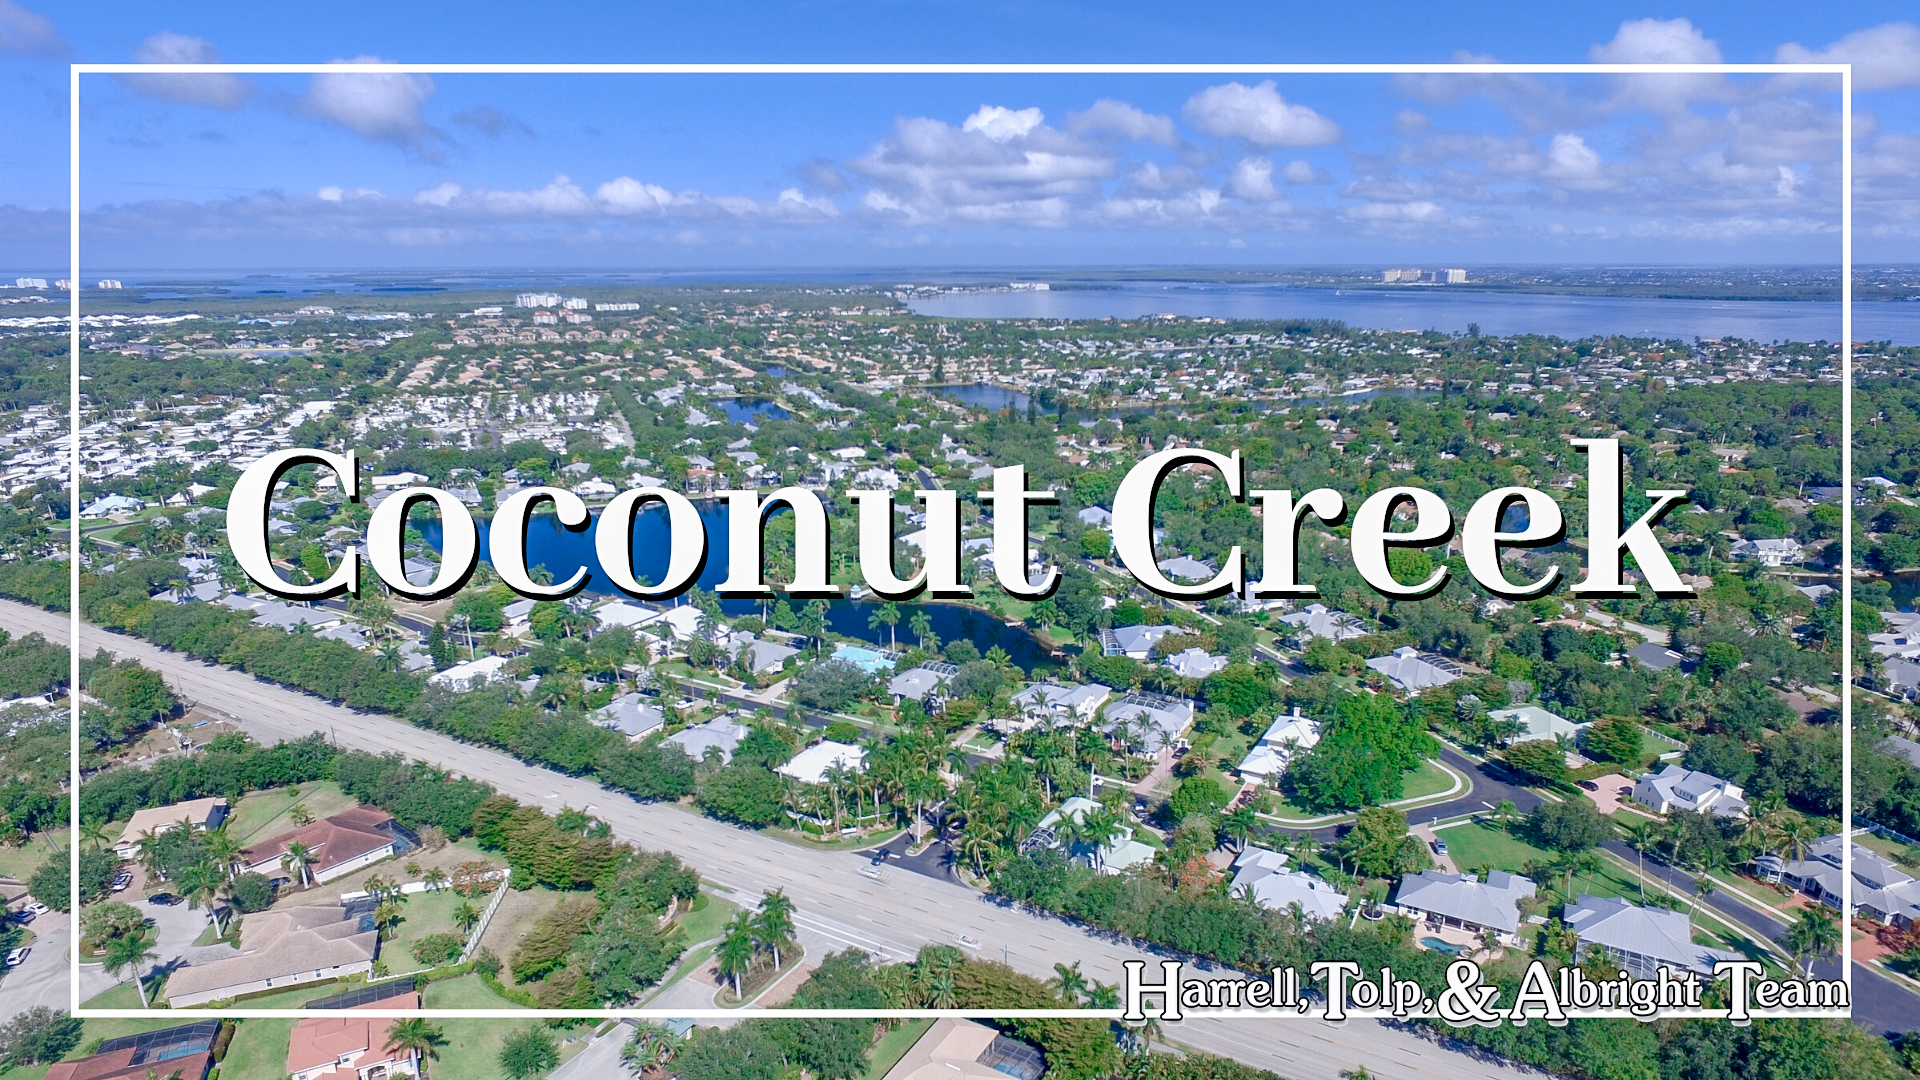 Coconut Creek